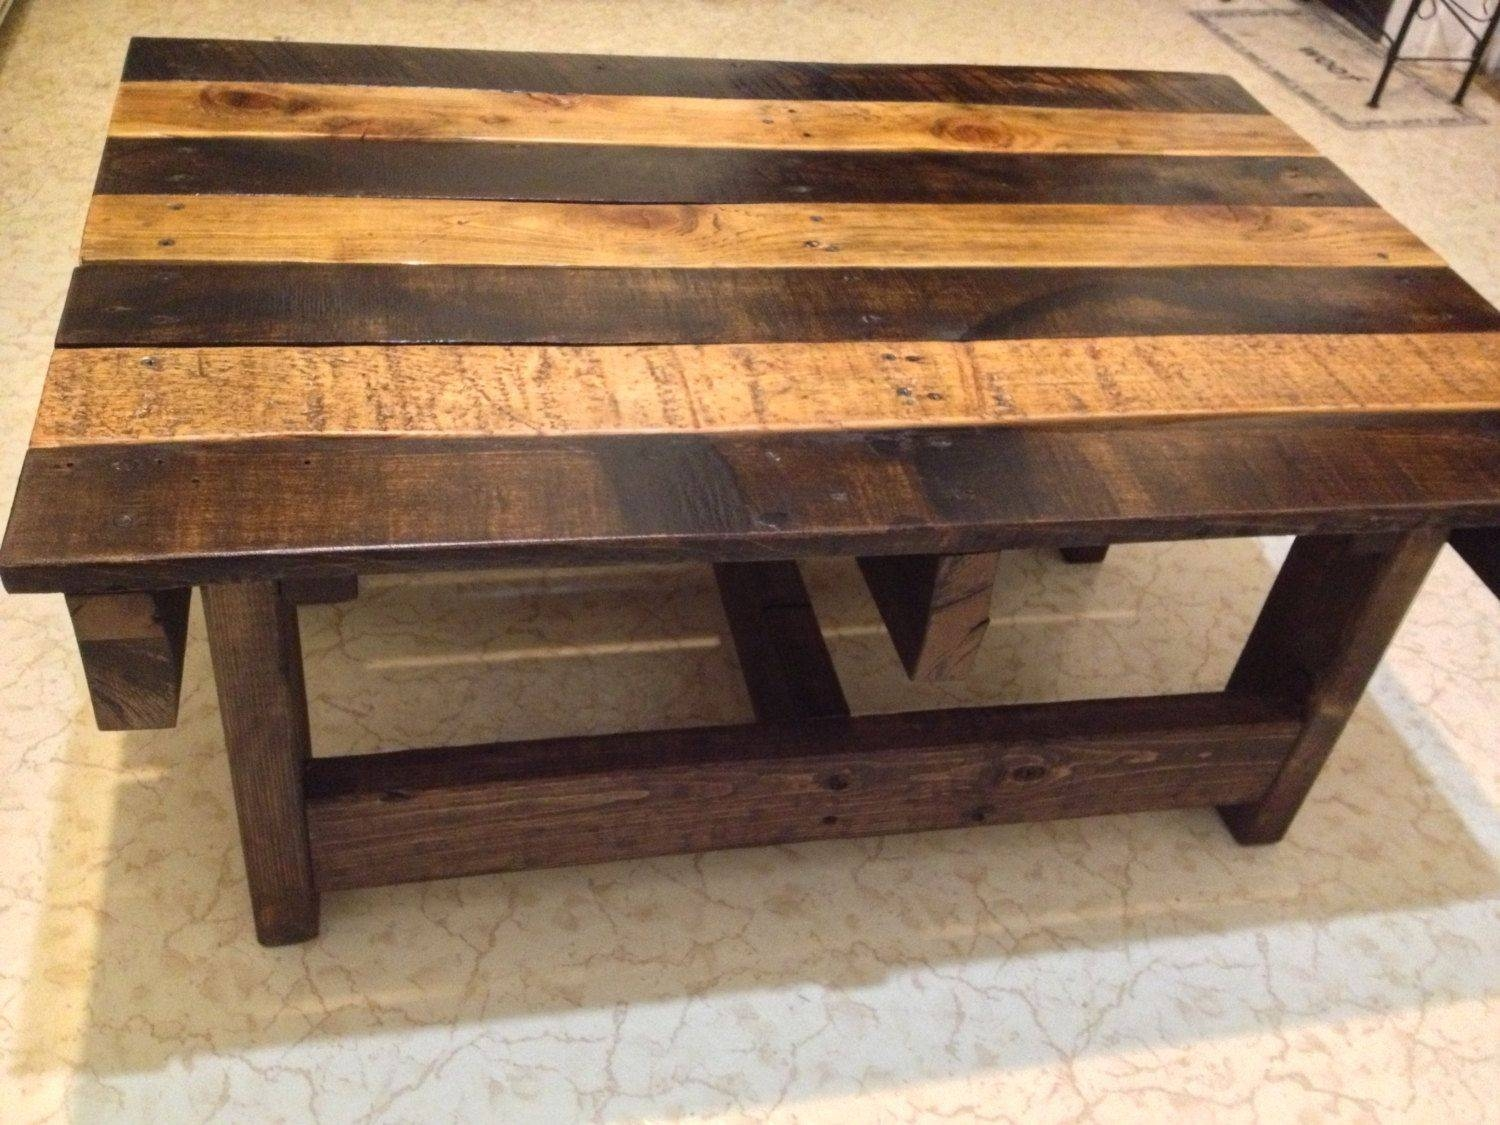 Hand Crafted Handmade Reclaimed Rustic Pallet Wood Coffee Table pertaining to Handmade Wooden Coffee Tables (Image 9 of 15)